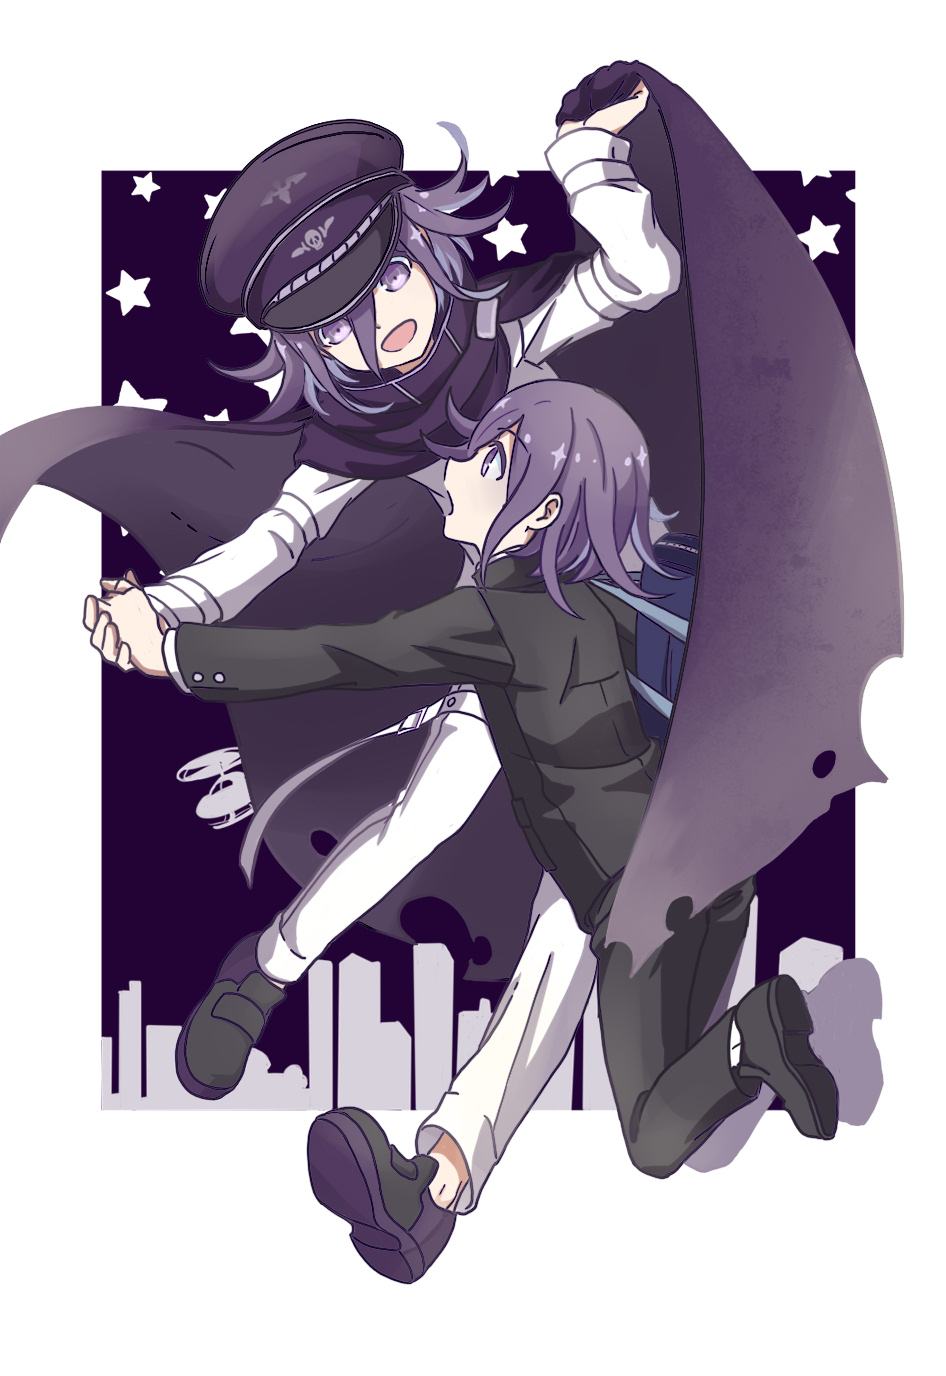 :d :o aircraft bag black_cape black_footwear black_hat black_pants black_shirt cape danganronpa dual_persona eyebrows_visible_through_hair full_body hair_between_eyes hat helicopter highres holding_hands long_sleeves male_focus new_danganronpa_v3 no_socks open_mouth ouma_kokichi pants peaked_cap purple_eyes purple_hair school_bag school_uniform shiro_q~ shirt shoes skull_print smile star starry_background white_pants white_shirt